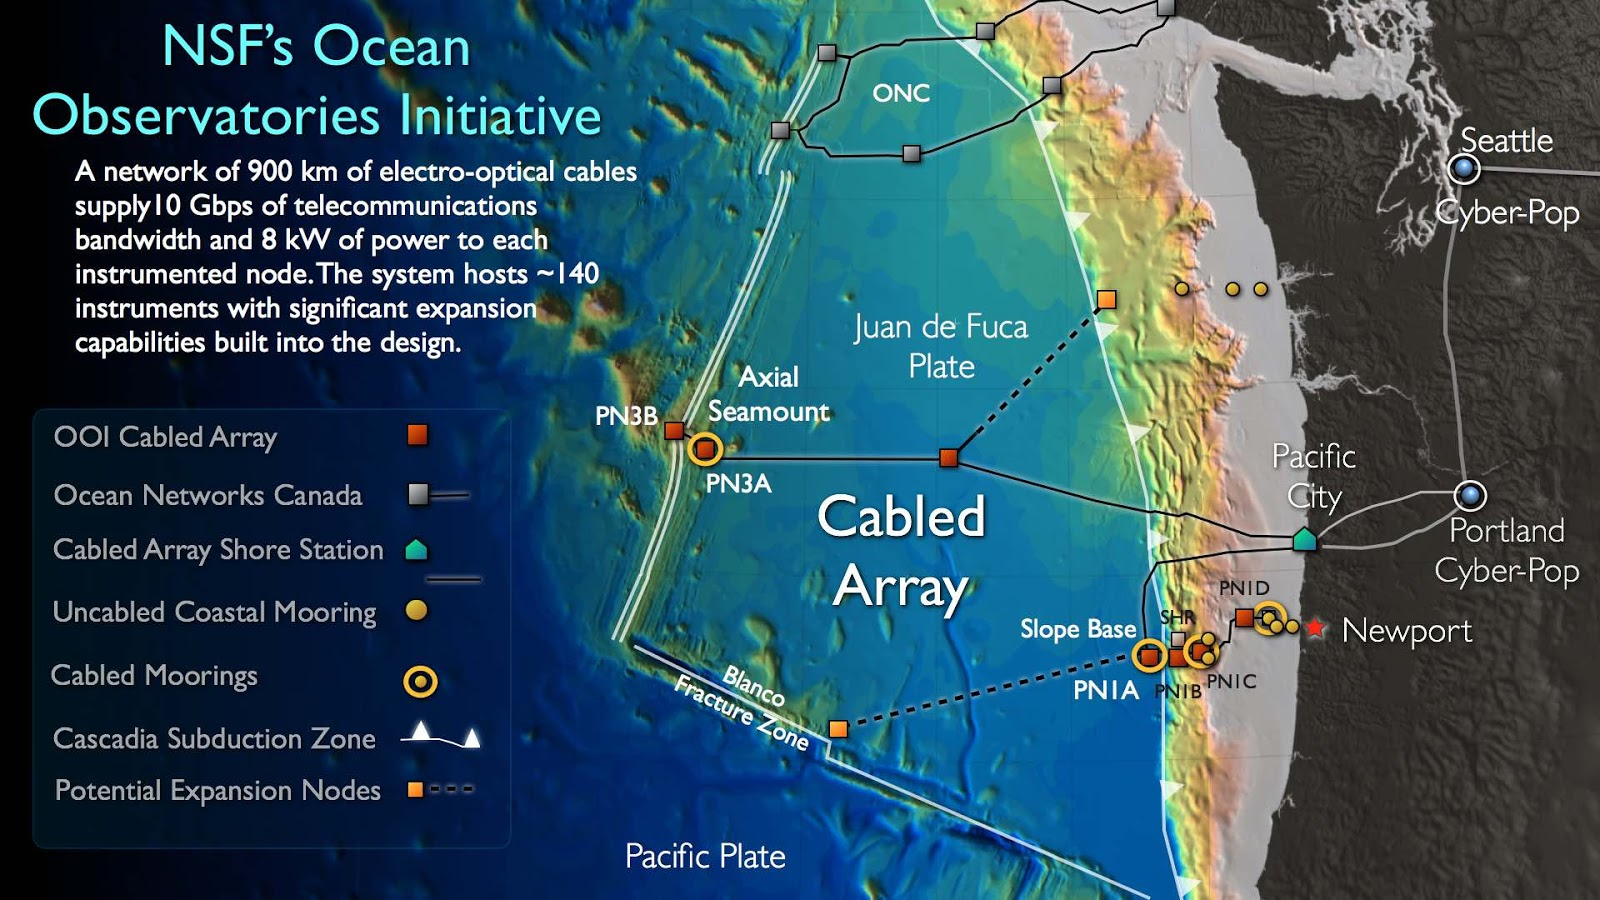 Axial Seamount Expedition 2015: The 2015 Eruption